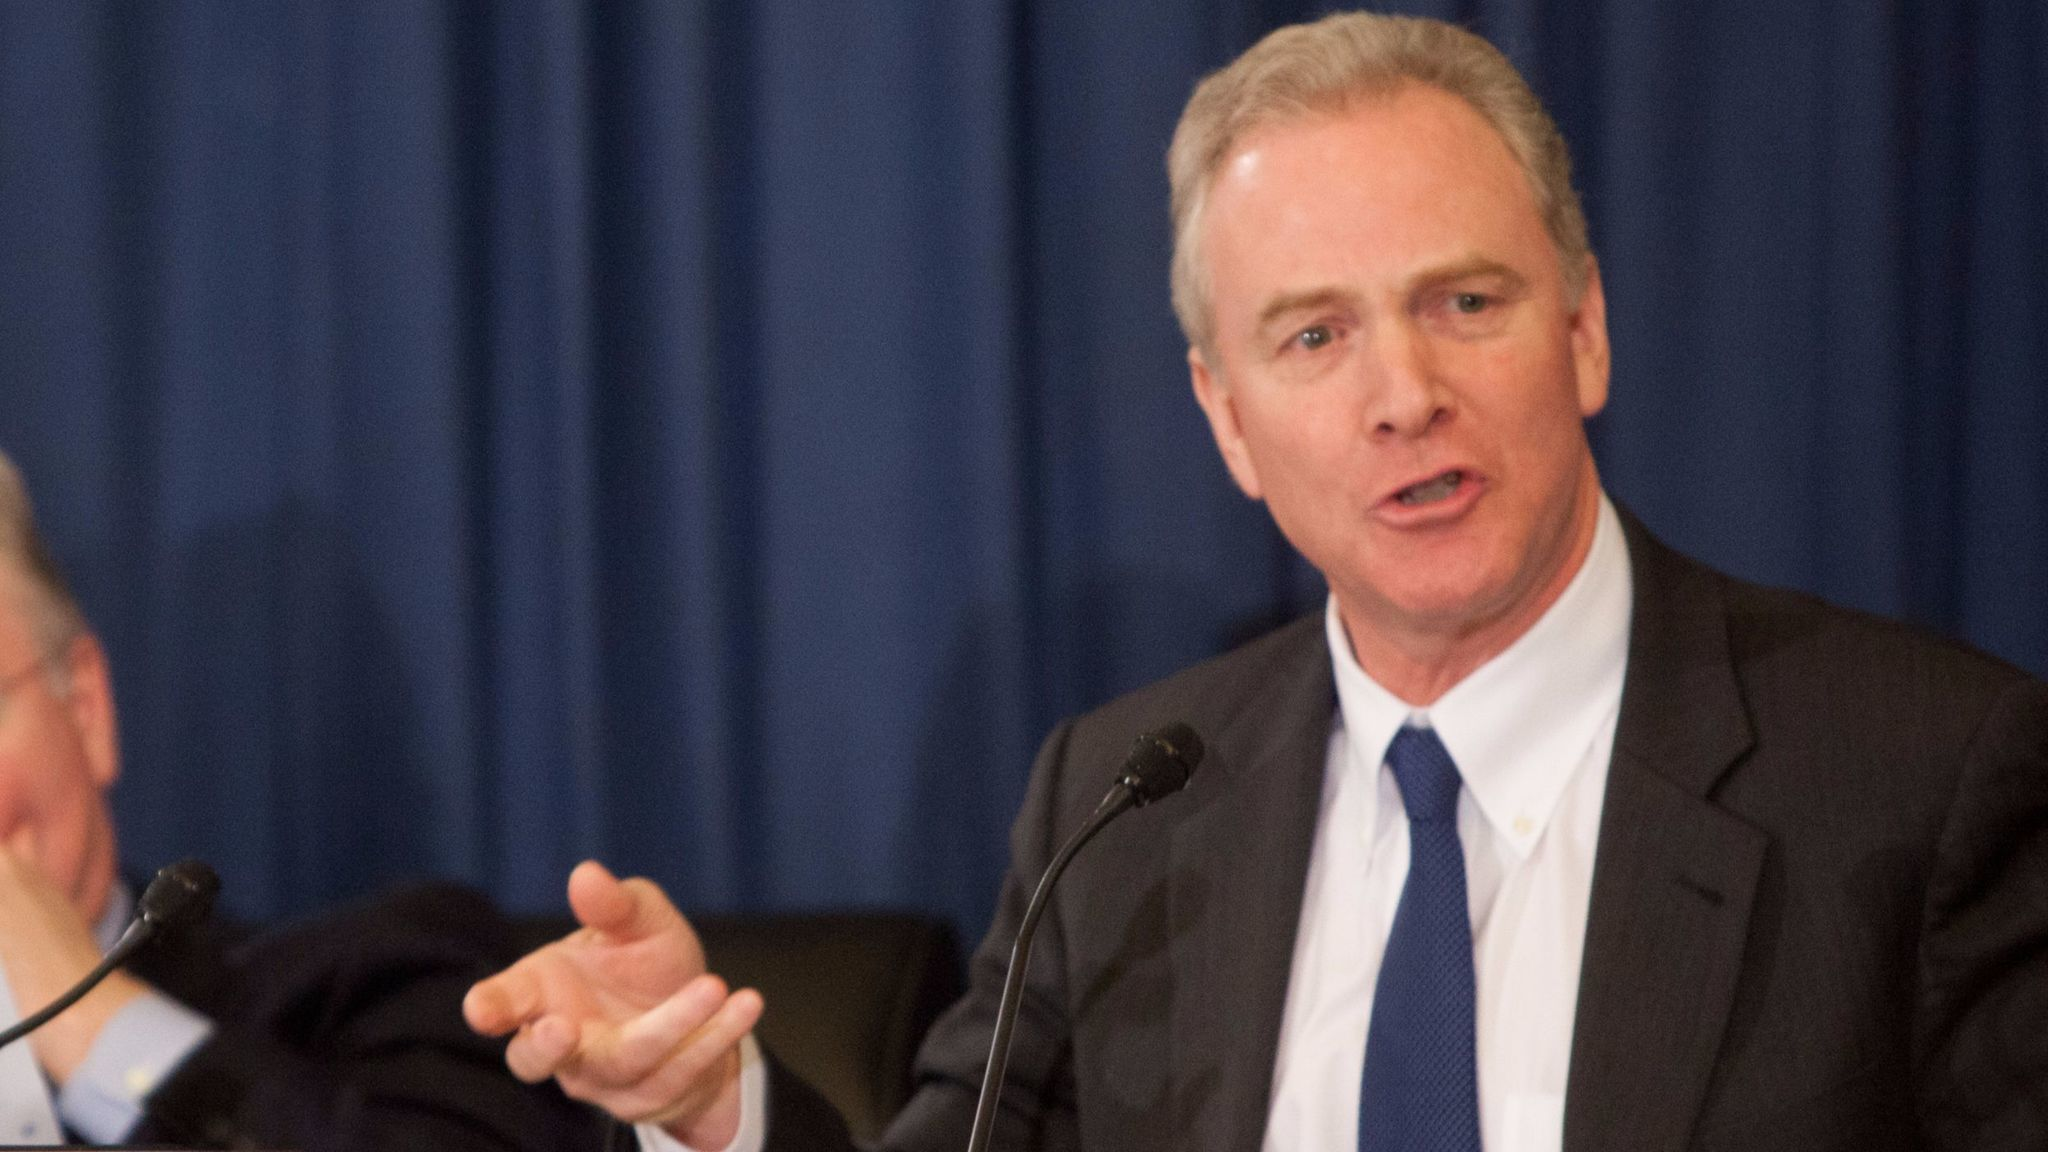 Van Hollen Camp Disputes Turnout Allegation In Book